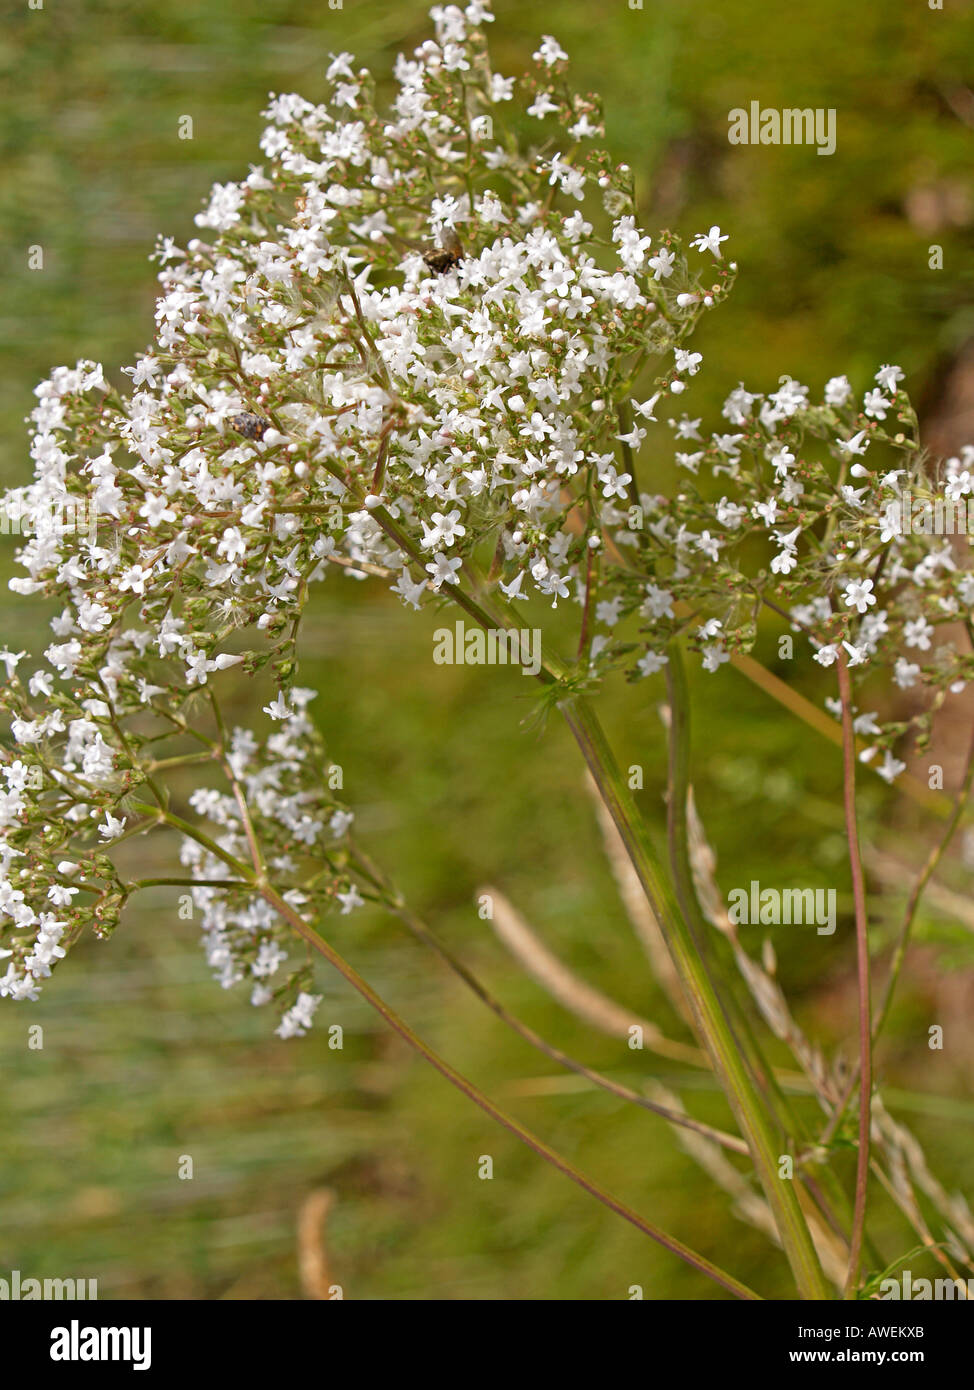 bloomer blooming valerian Valeriana officinalis - Stock Image